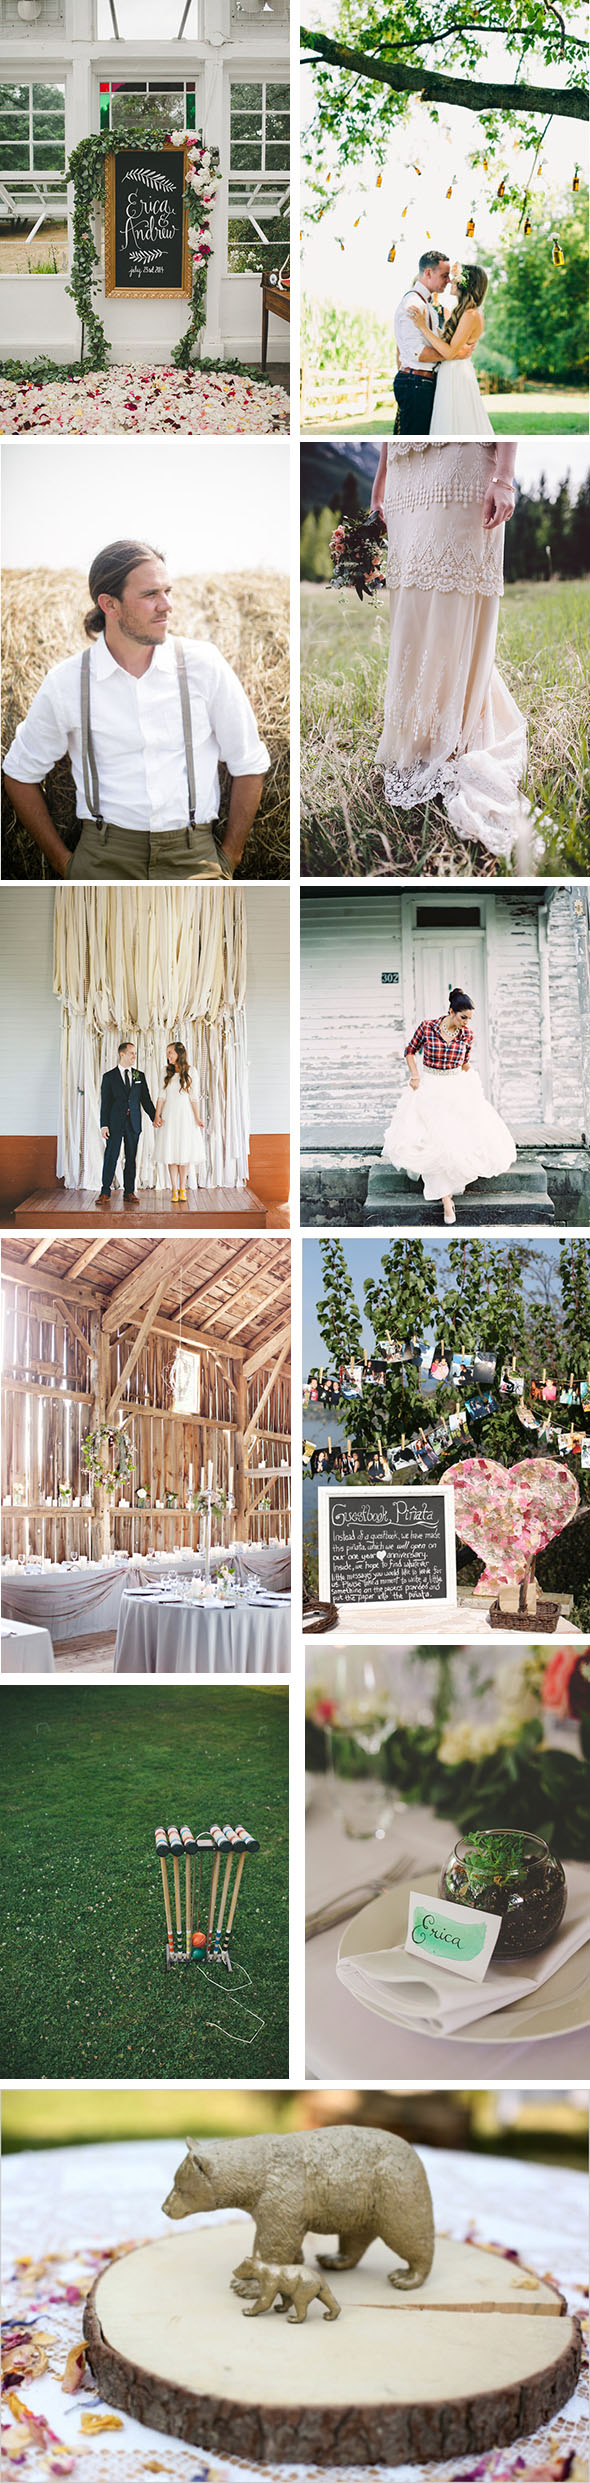 Canadian Wedding Inspiration